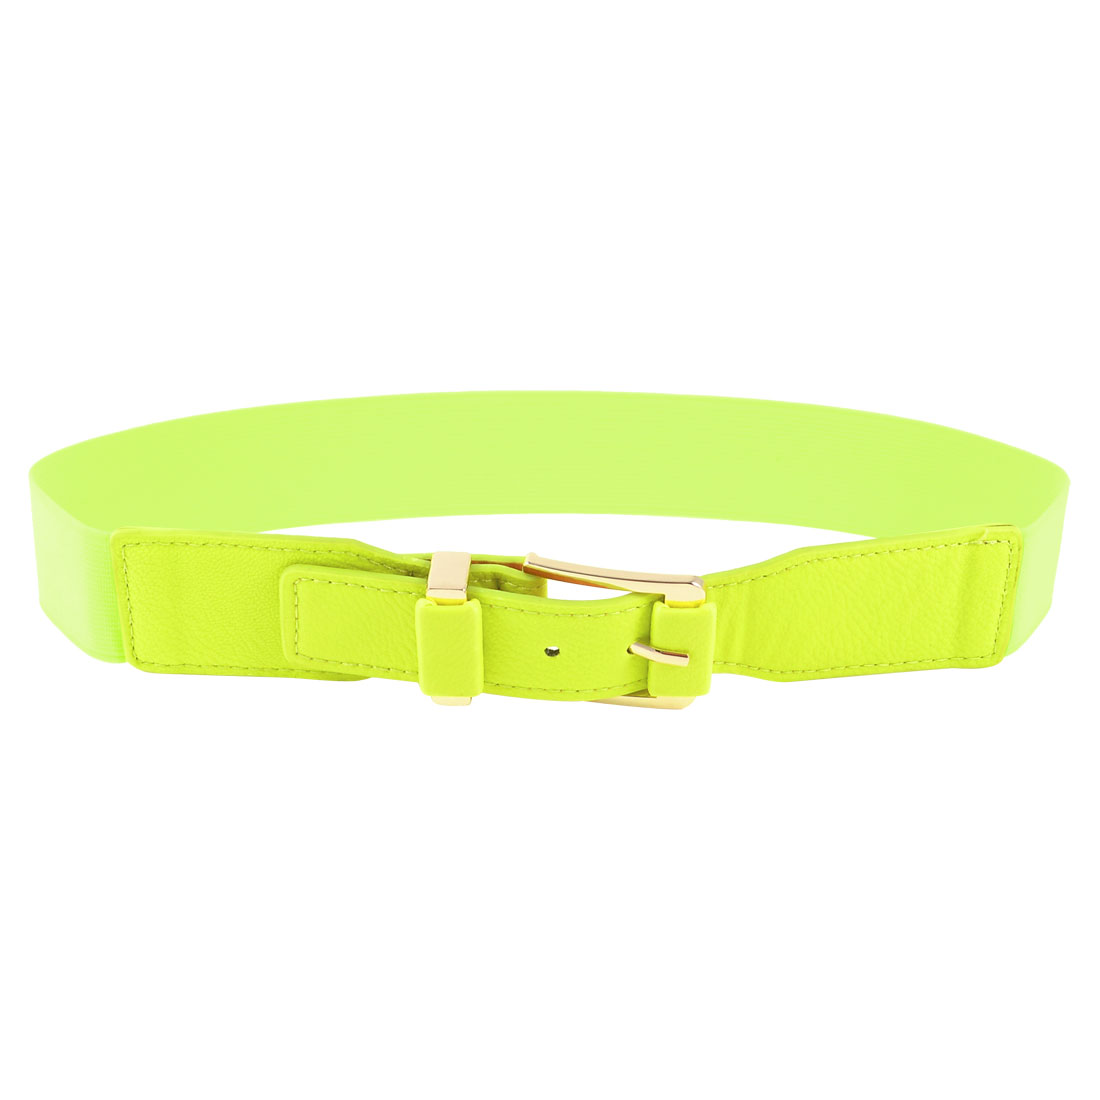 Single Pin Buckle 4cm Wide Elastic Waist Cinch Belt Yellow Green for Woman